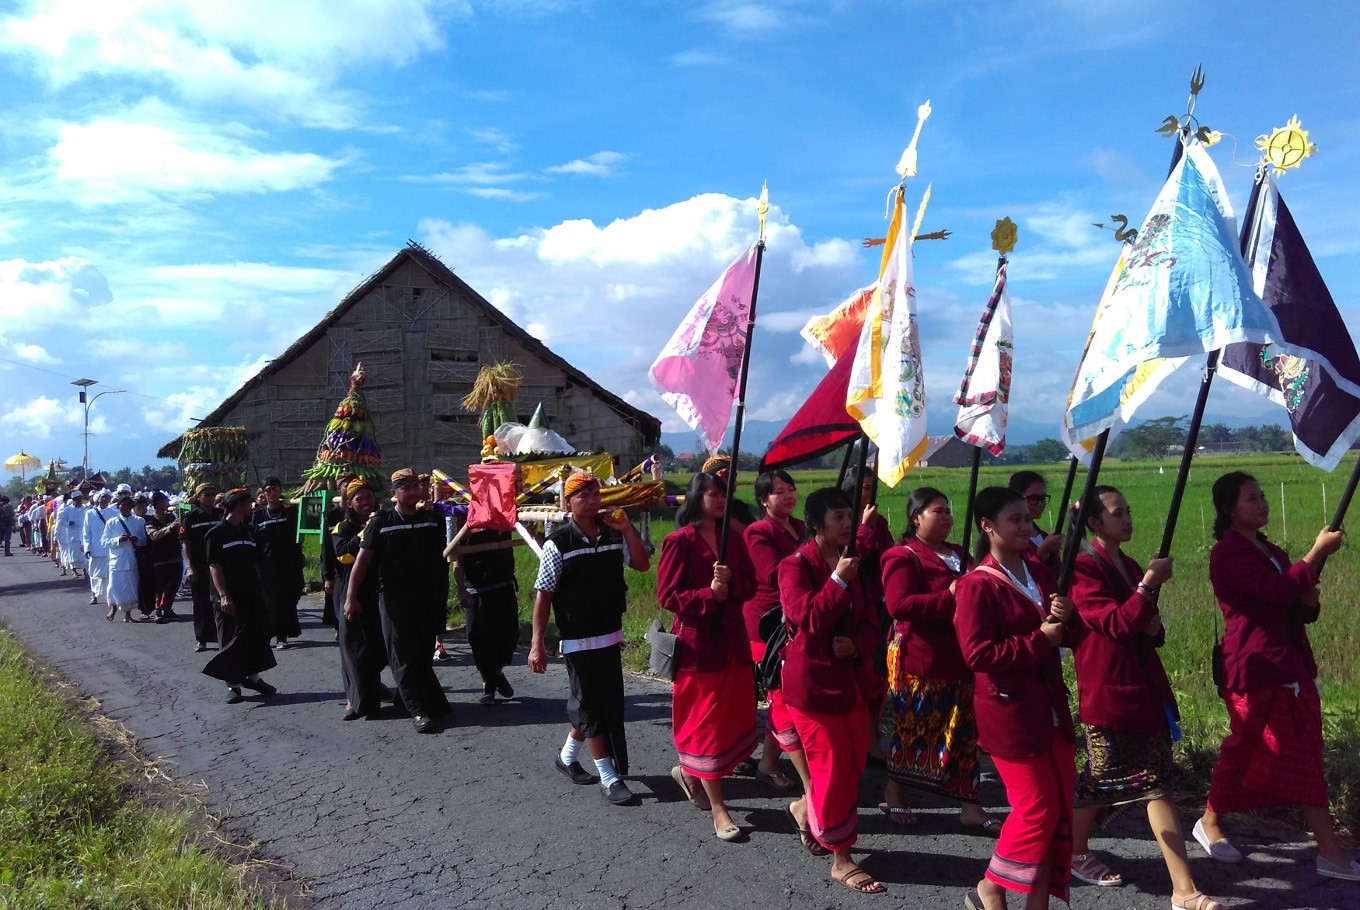 Hindus walk for about two kilometers from Tirta Buwana temple to Umbul Geneng in Klaten, Central Java, on Sunday, March 11.